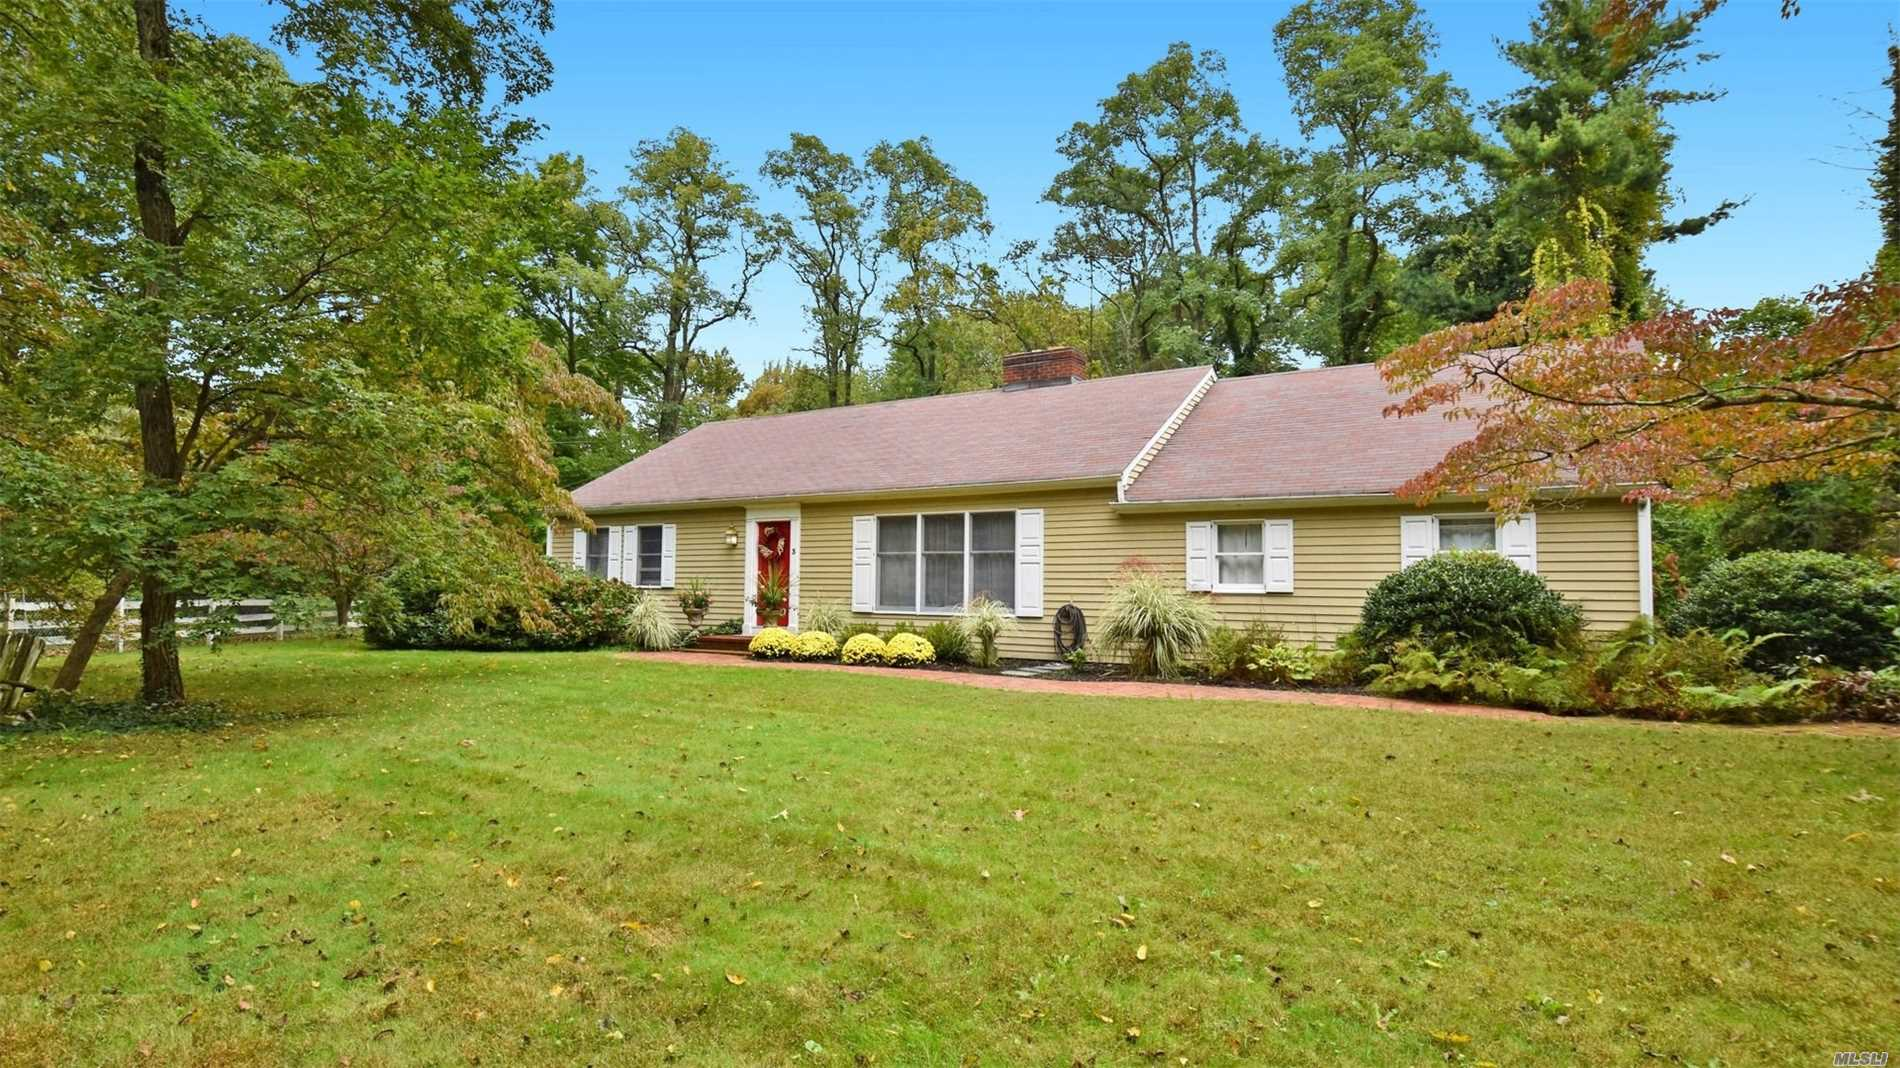 Photo of home for sale at 3 Old Pine Ln, Northport NY